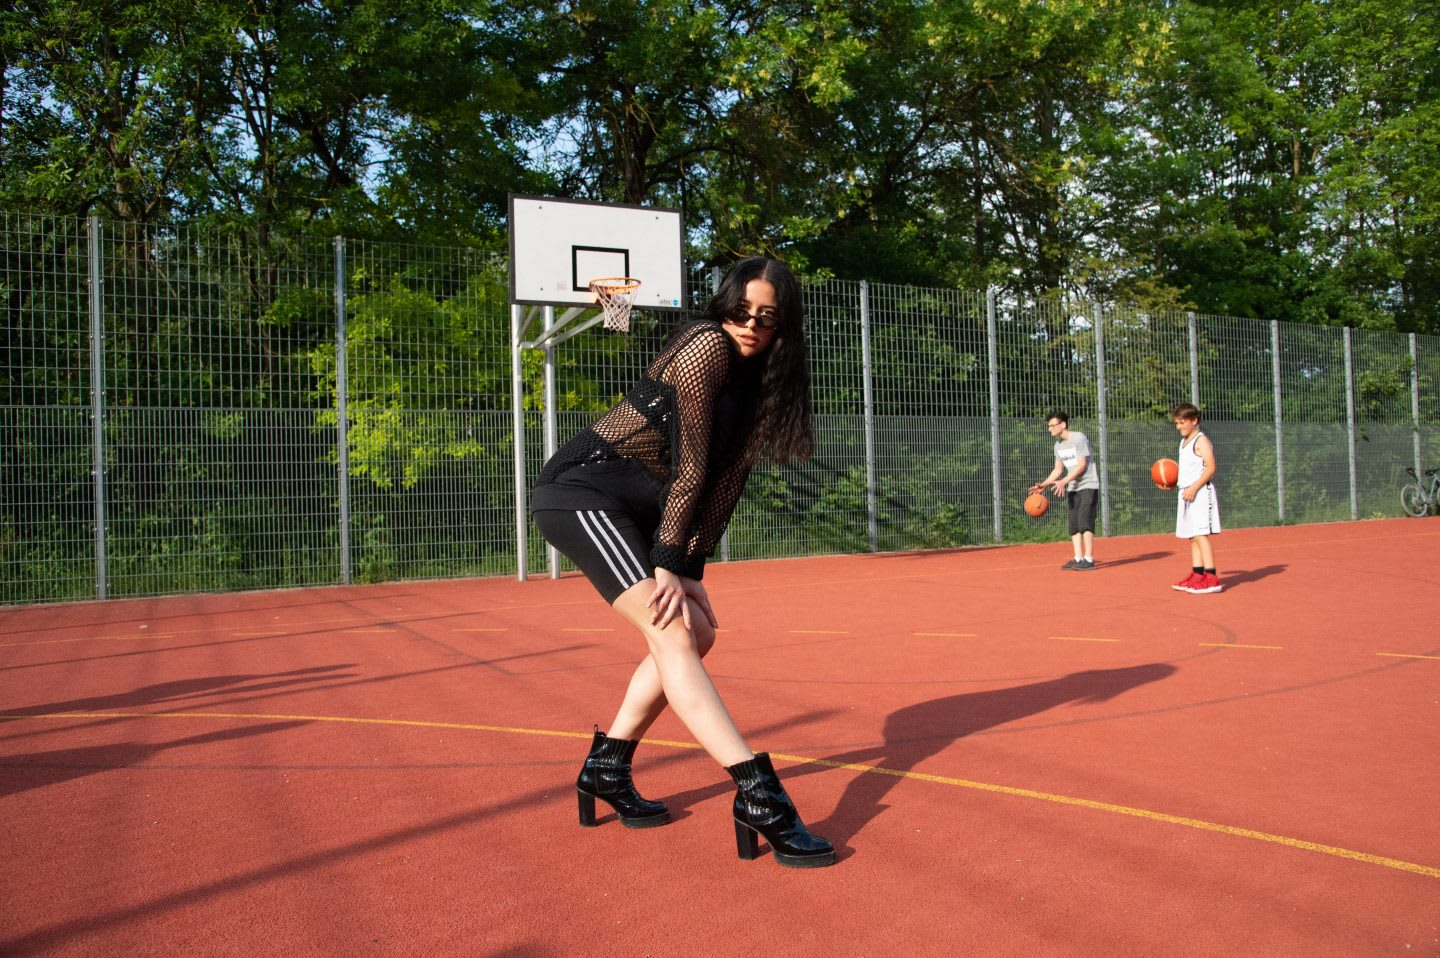 Girl wearing black tights and black boots posing on a basketball court, voguing, vogue, photography, attitude, posing, adidas, employees, confidence, GamePlan A